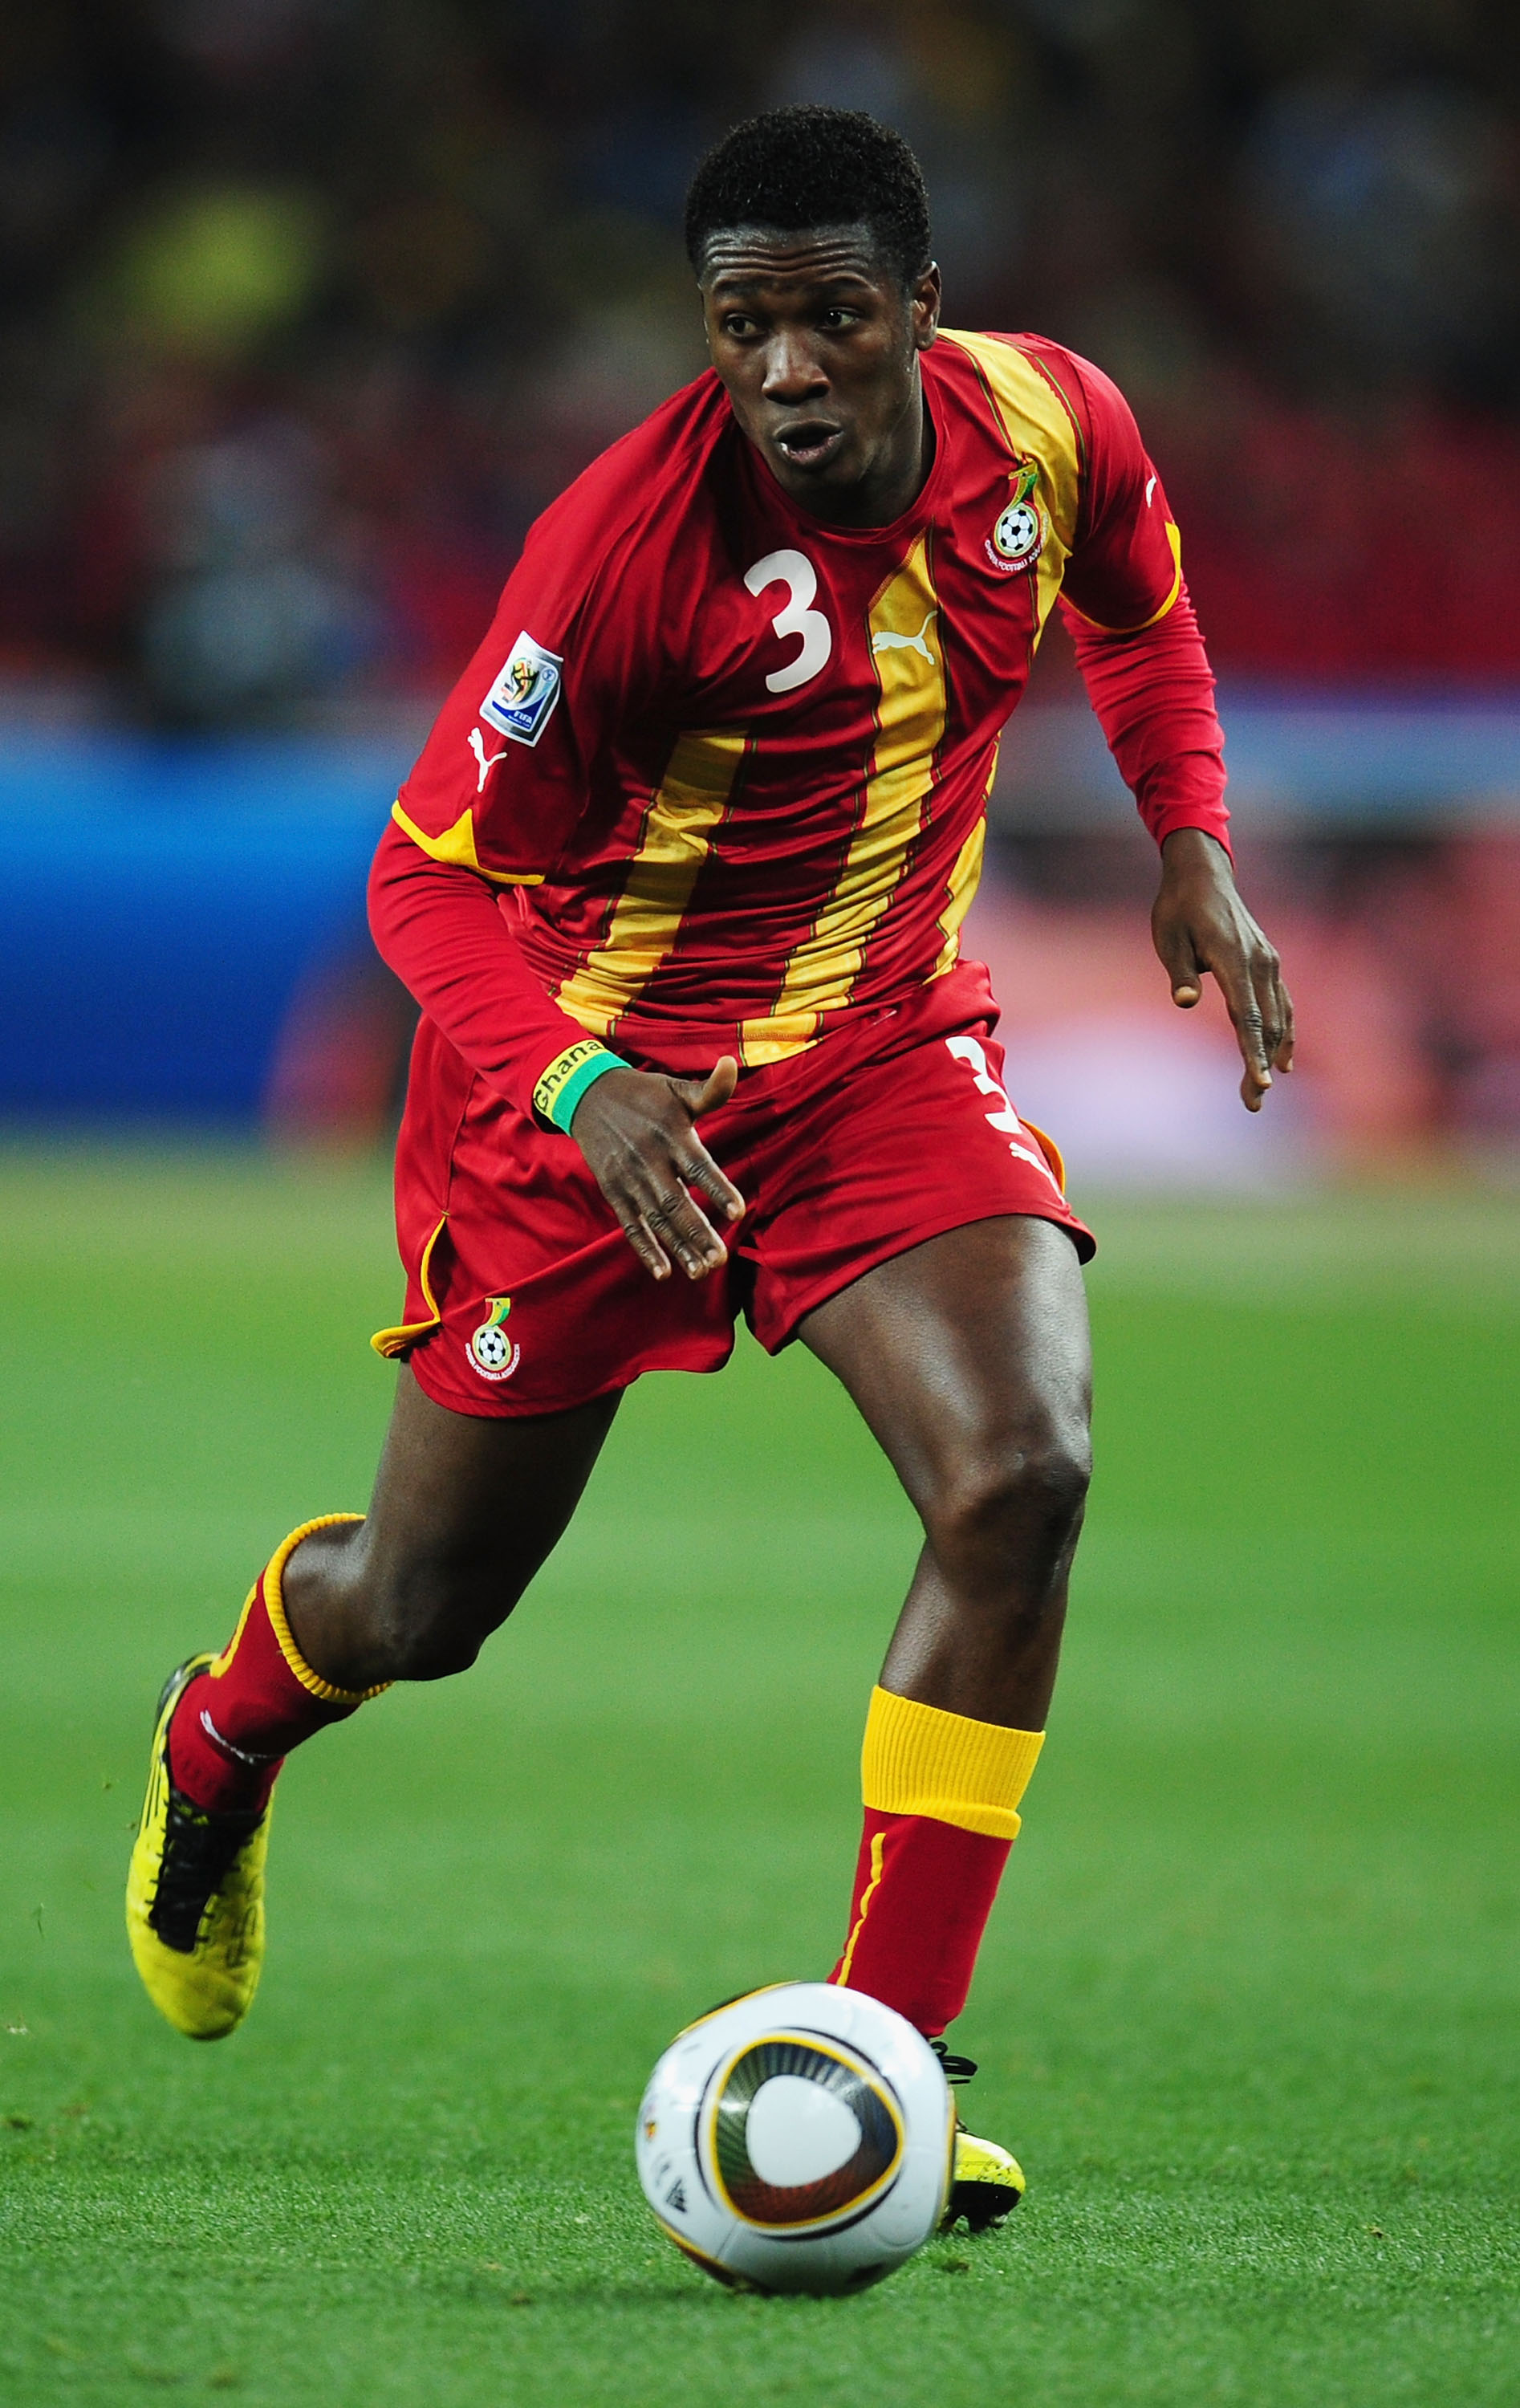 JOHANNESBURG, SOUTH AFRICA - JULY 02:  Asamoah Gyan of Ghana runs with the ball during the 2010 FIFA World Cup South Africa Quarter Final match between Uruguay and Ghana at the Soccer City stadium on July 2, 2010 in Johannesburg, South Africa.  (Photo by